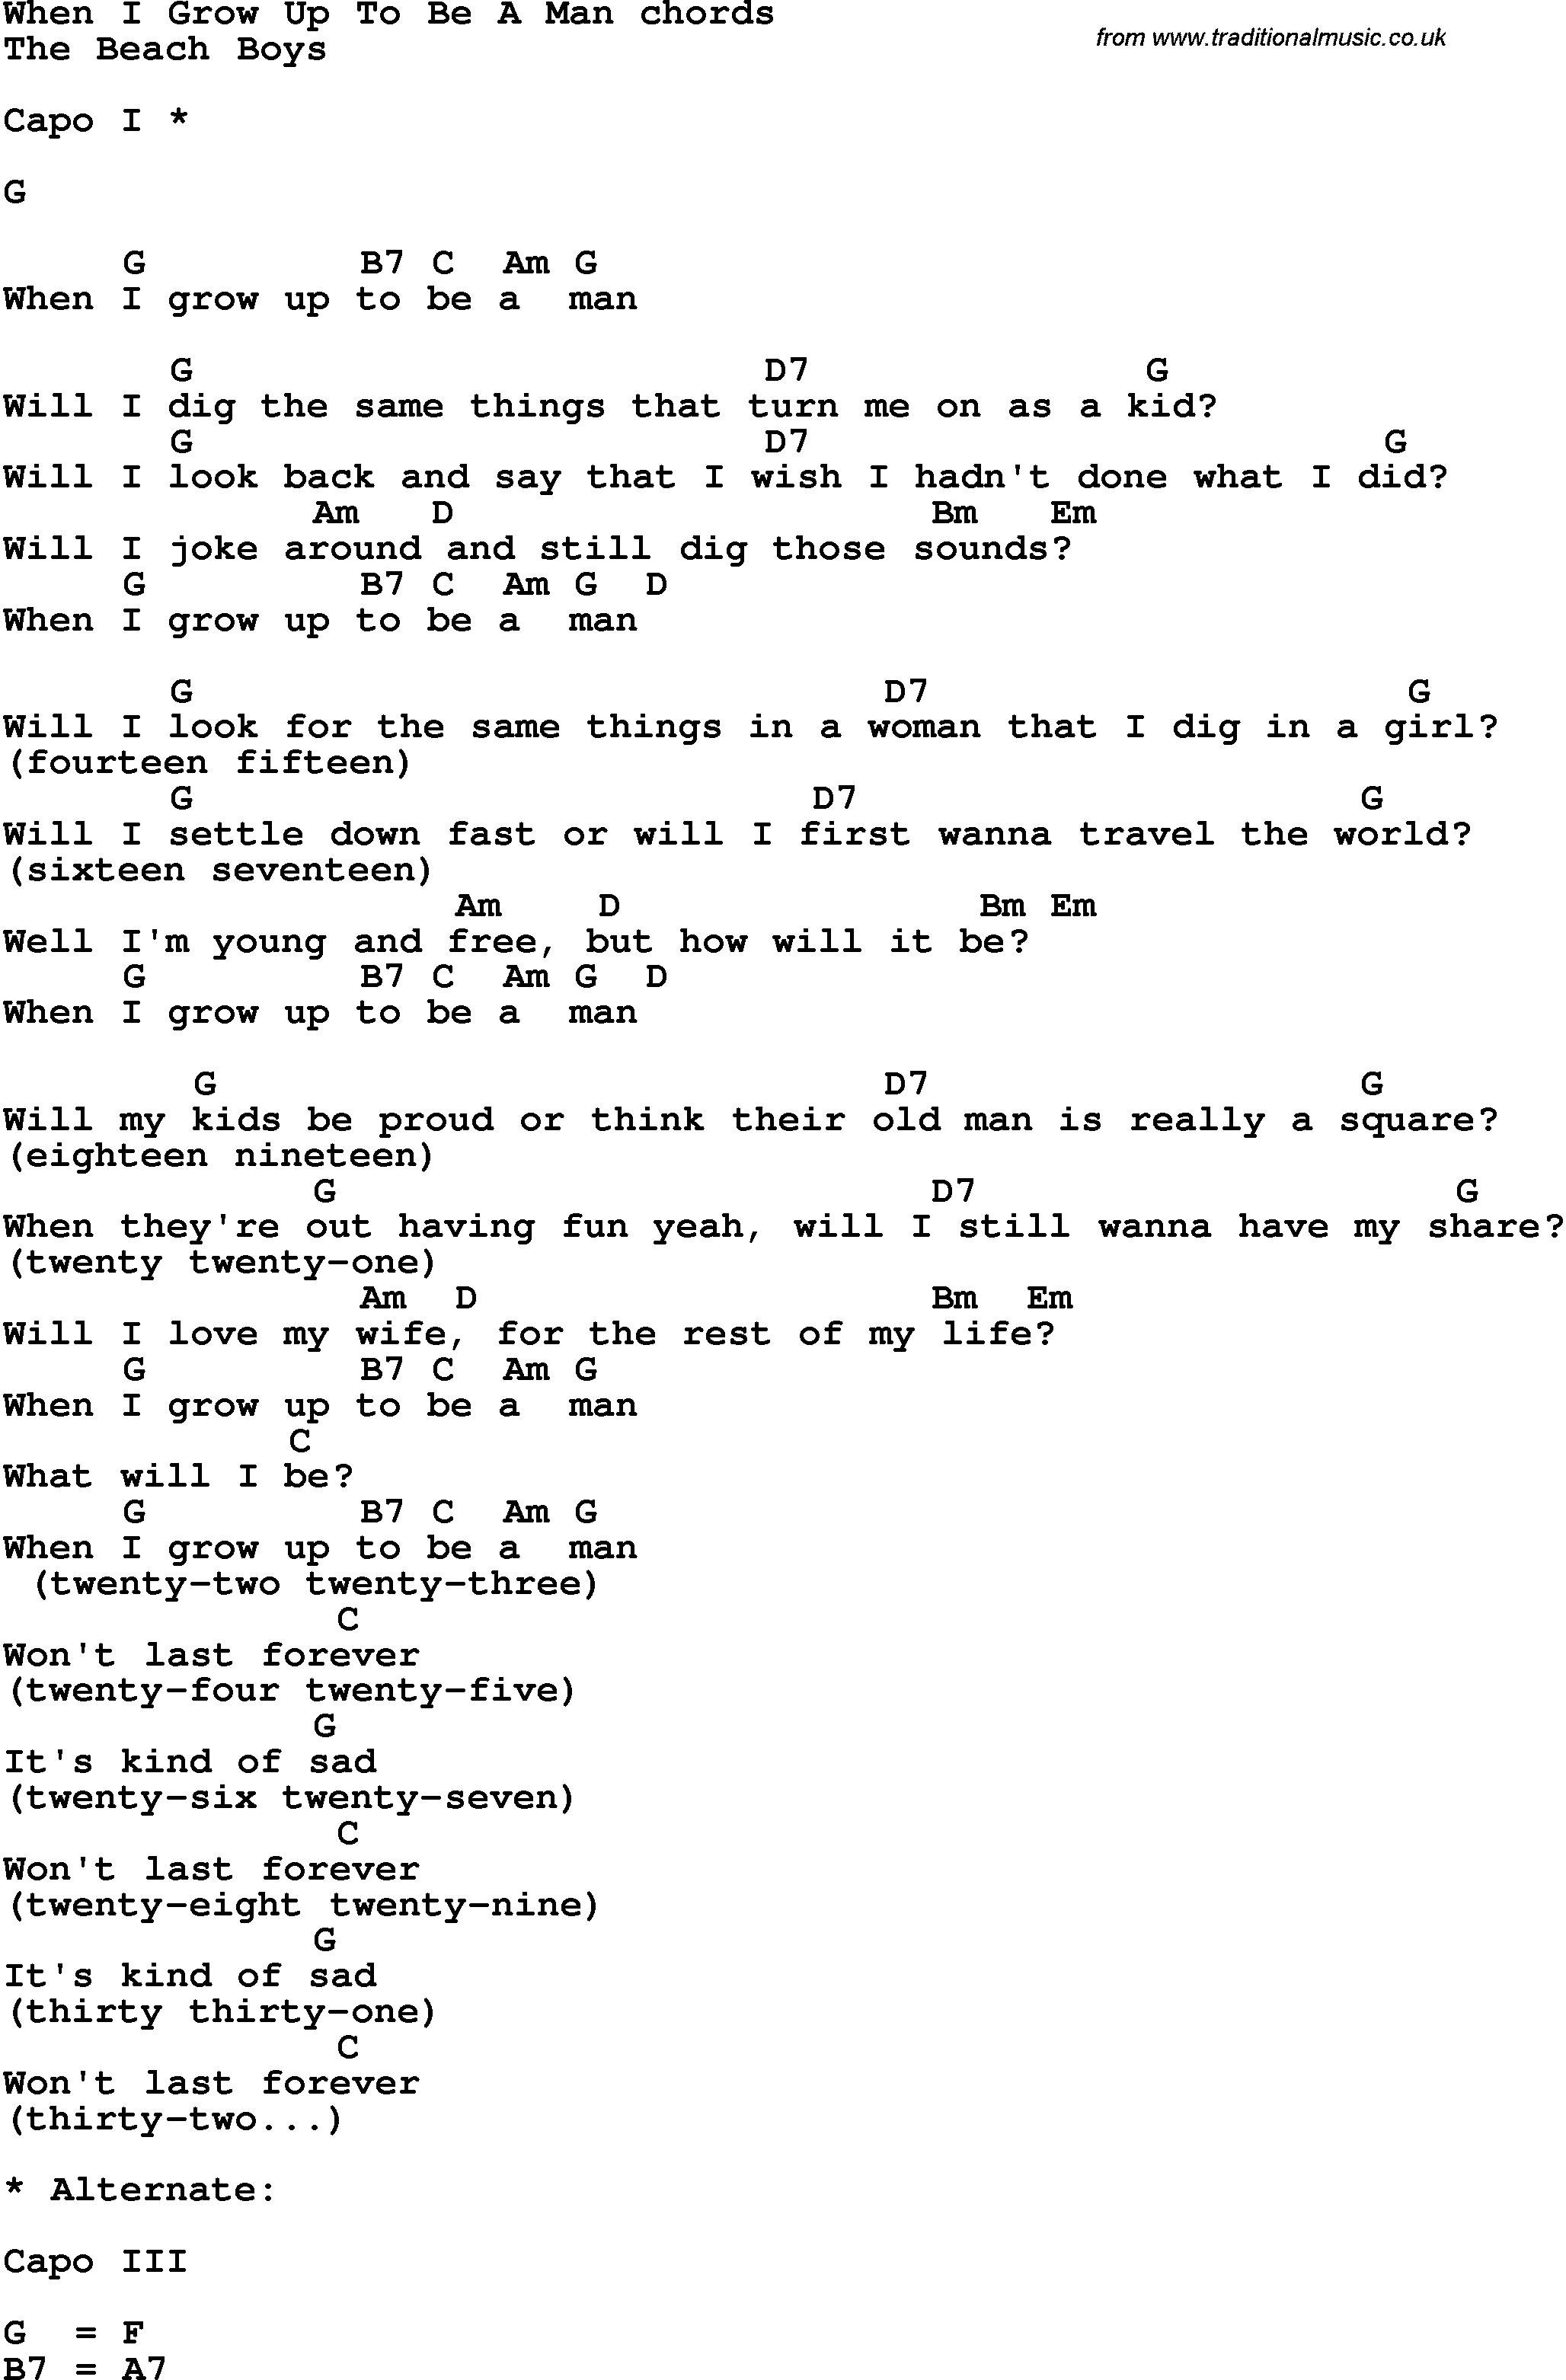 Song Lyrics With Guitar Chords For When I Grow Up To Be A Man